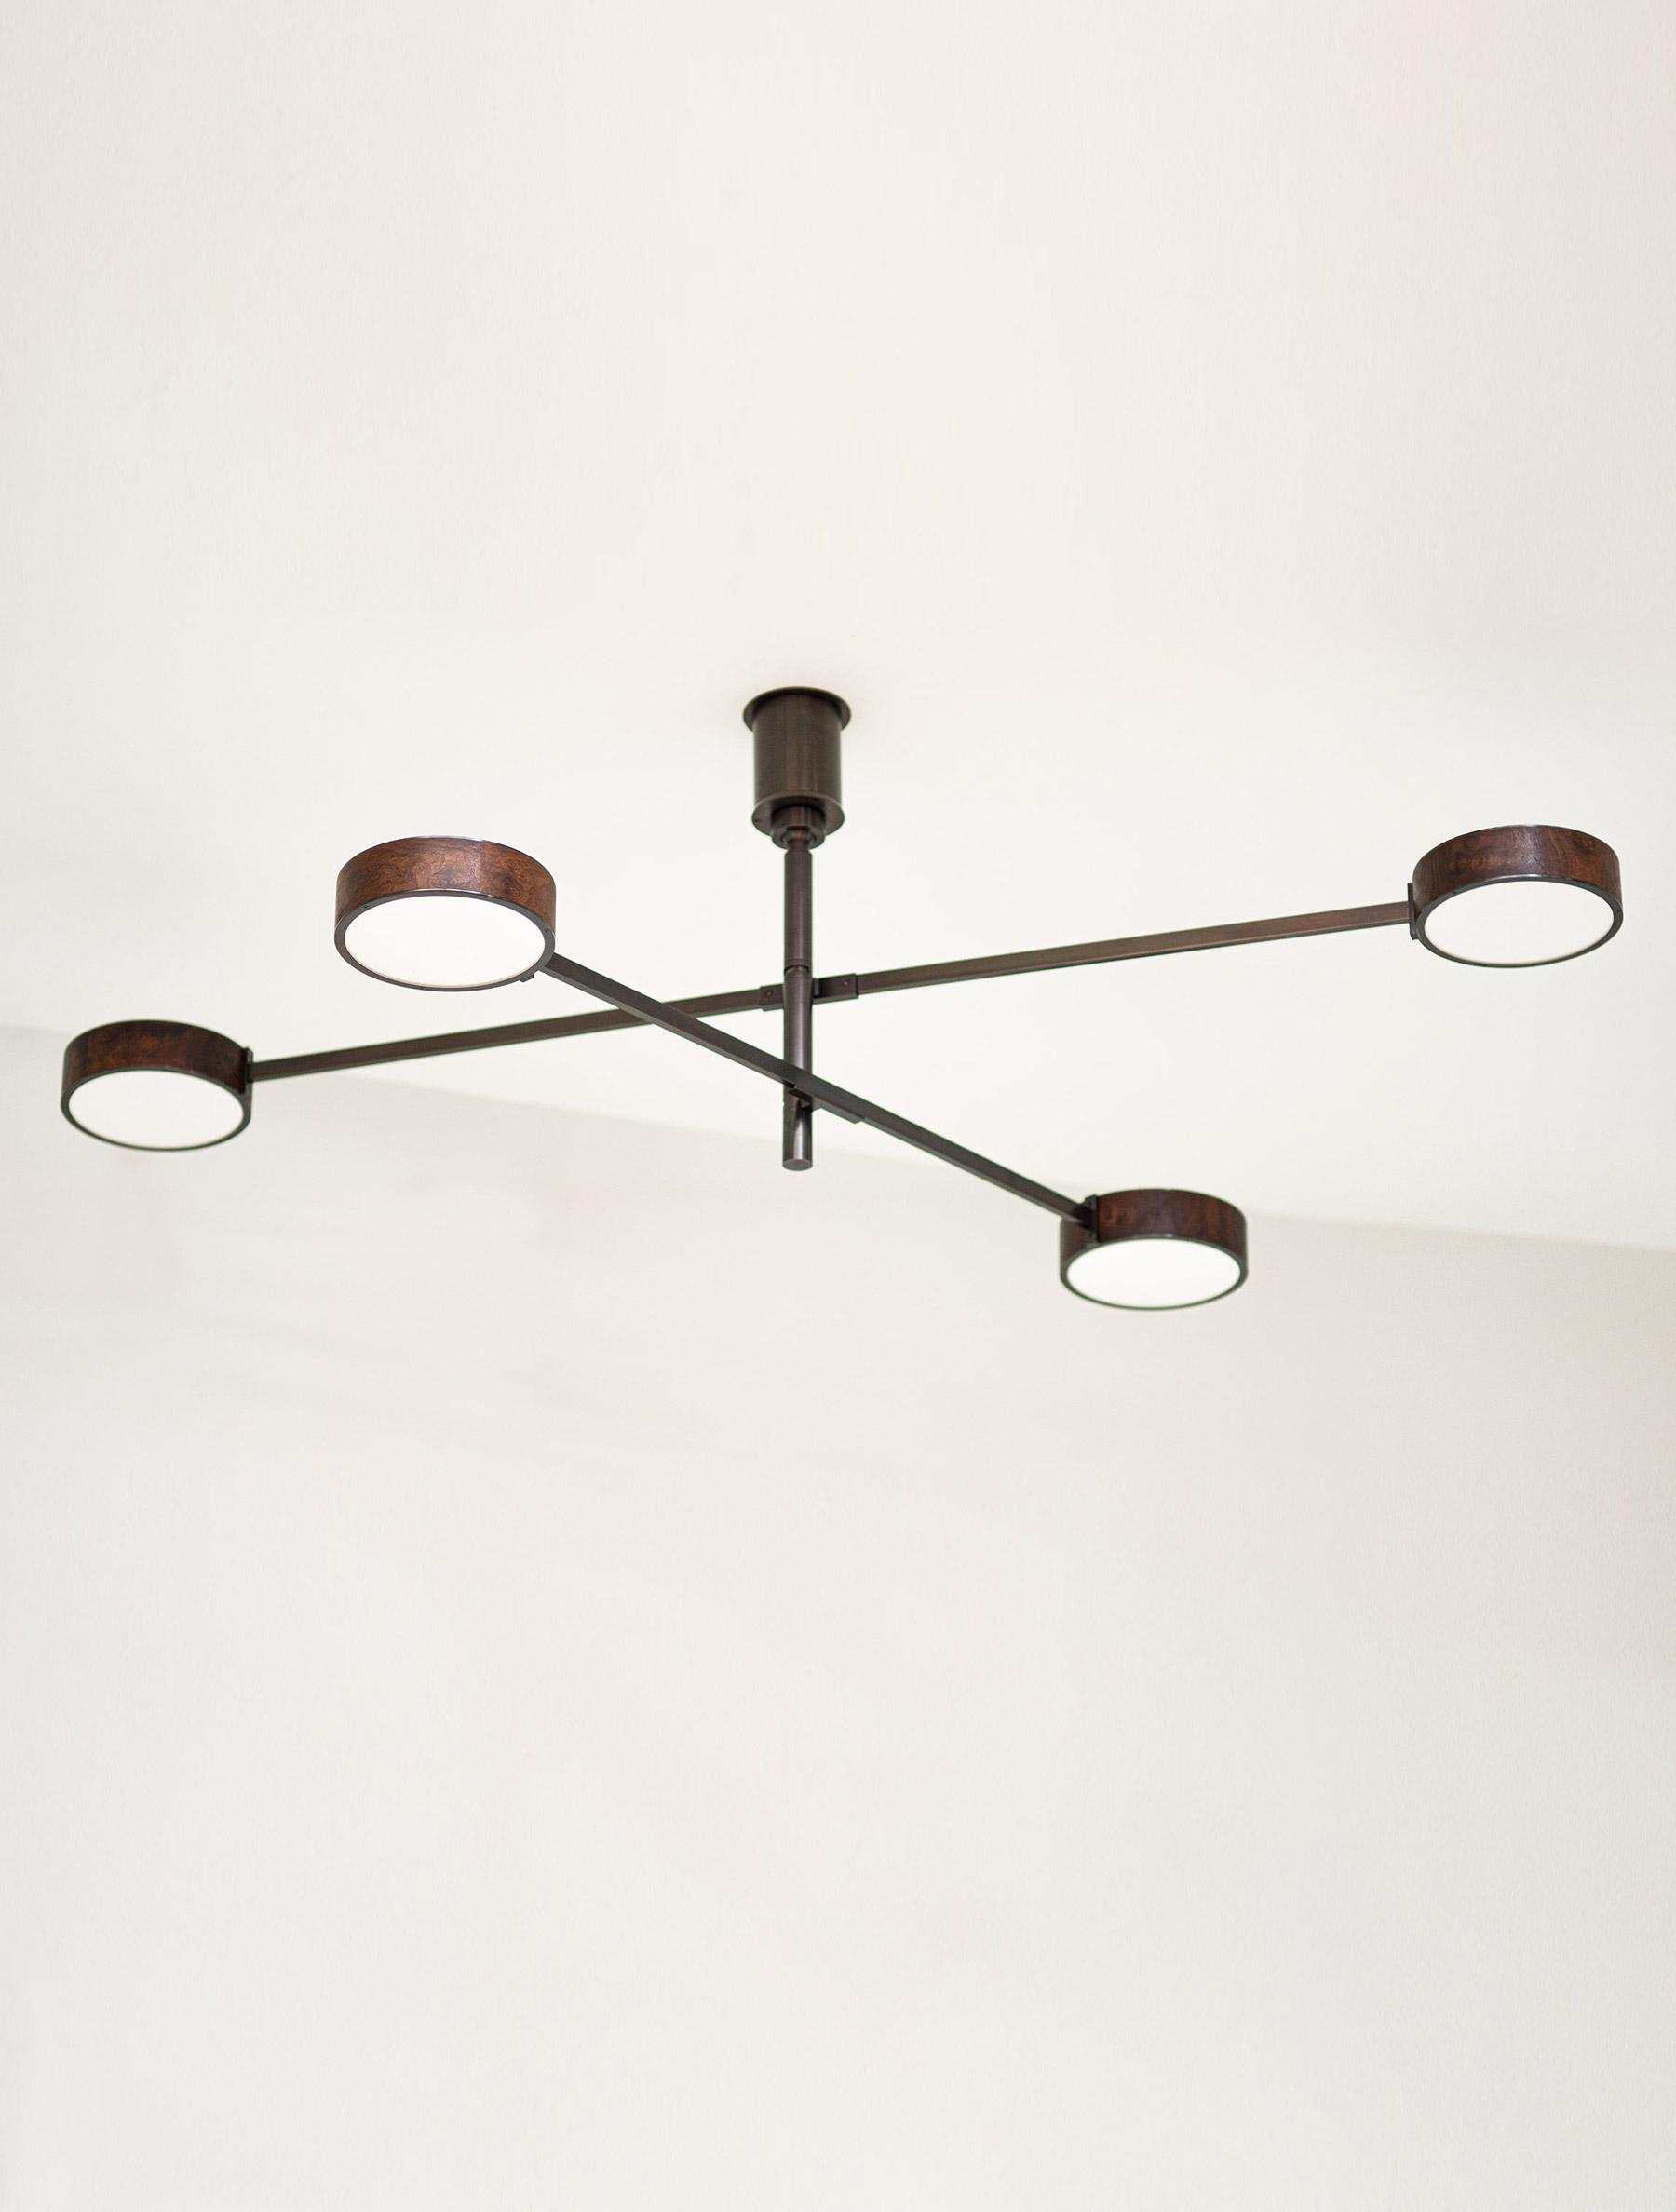 Monoscope 4 Chandelier shown in Blackened Brass, Walnut Burl